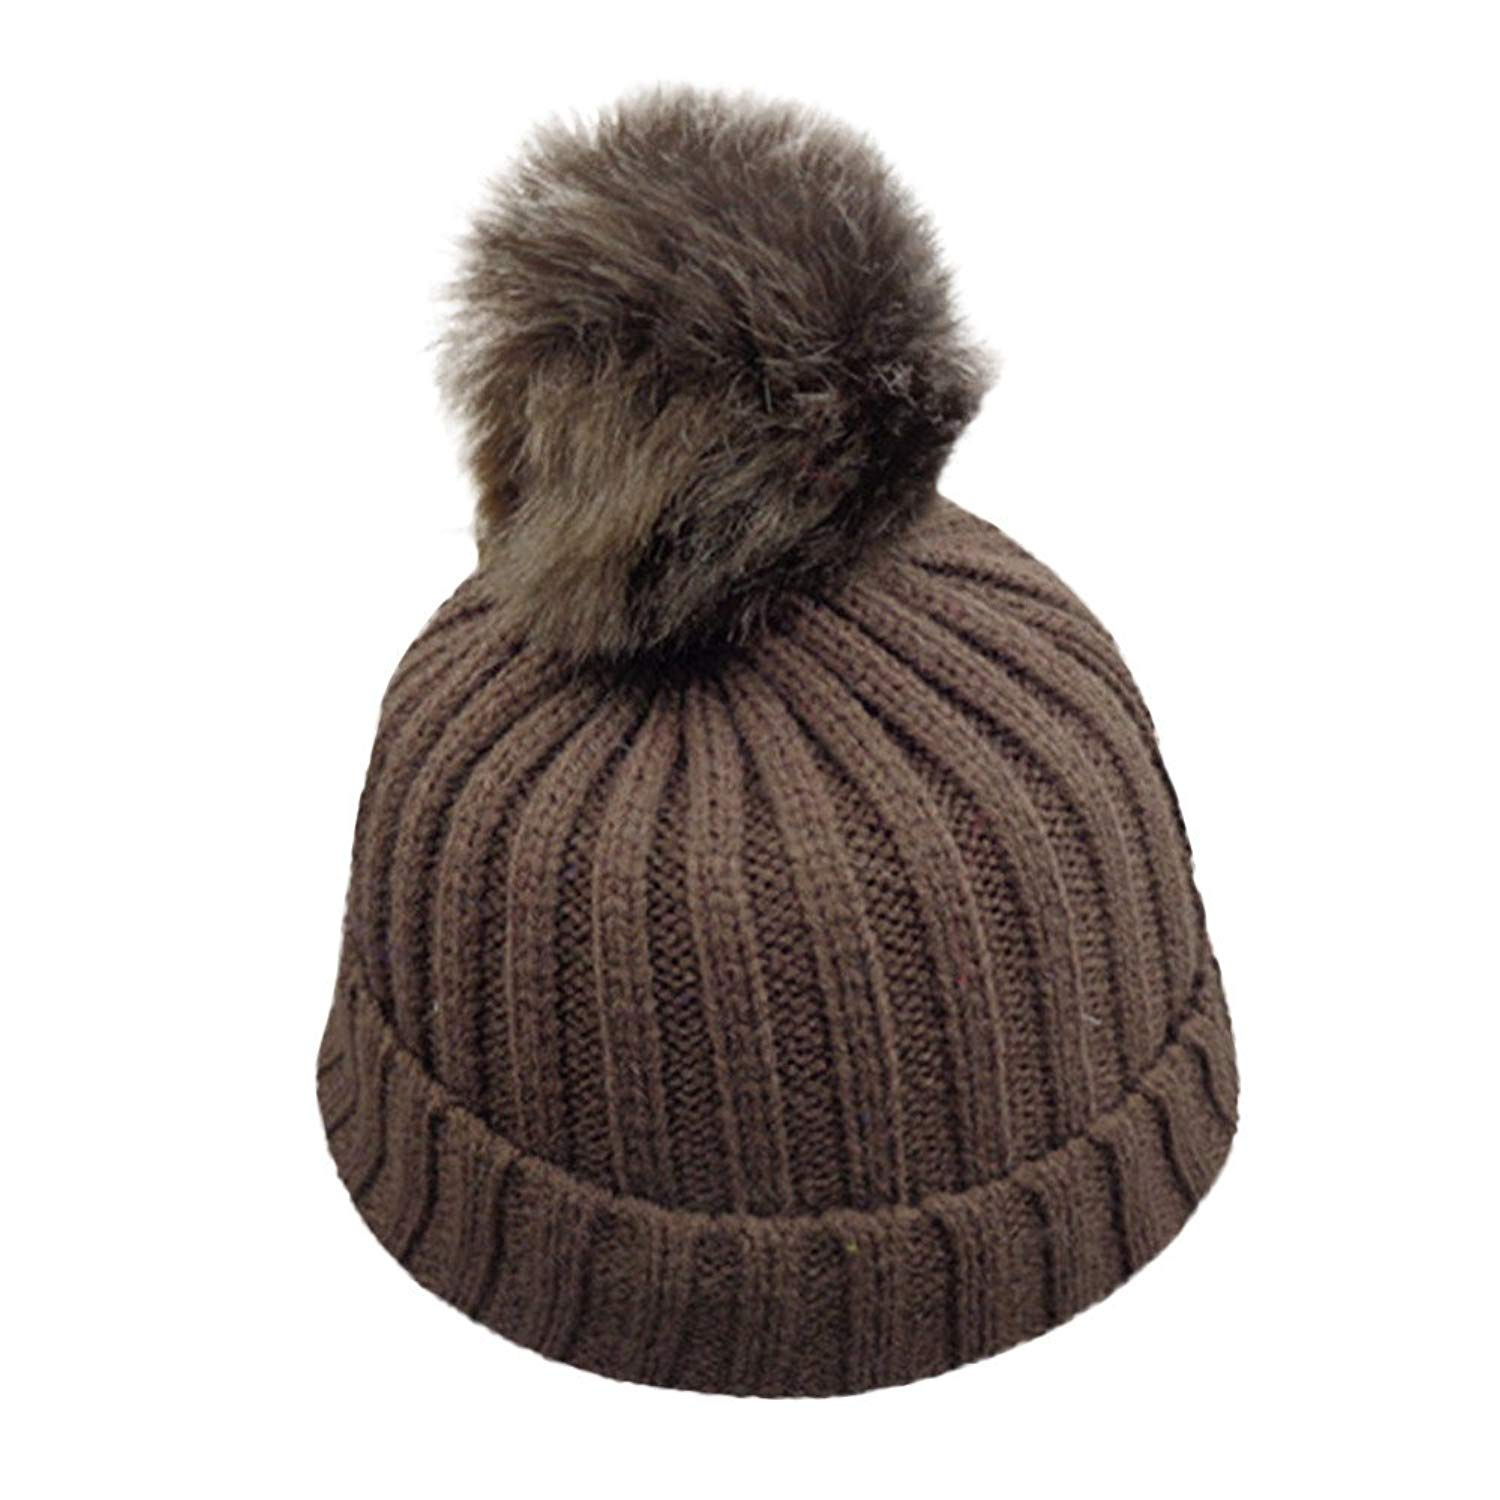 bb532126e1e Get Quotations · 1-8 Years Unisex Baby Boys Girls Winter Solid Knit Hat  Faux Fur Pom Pom